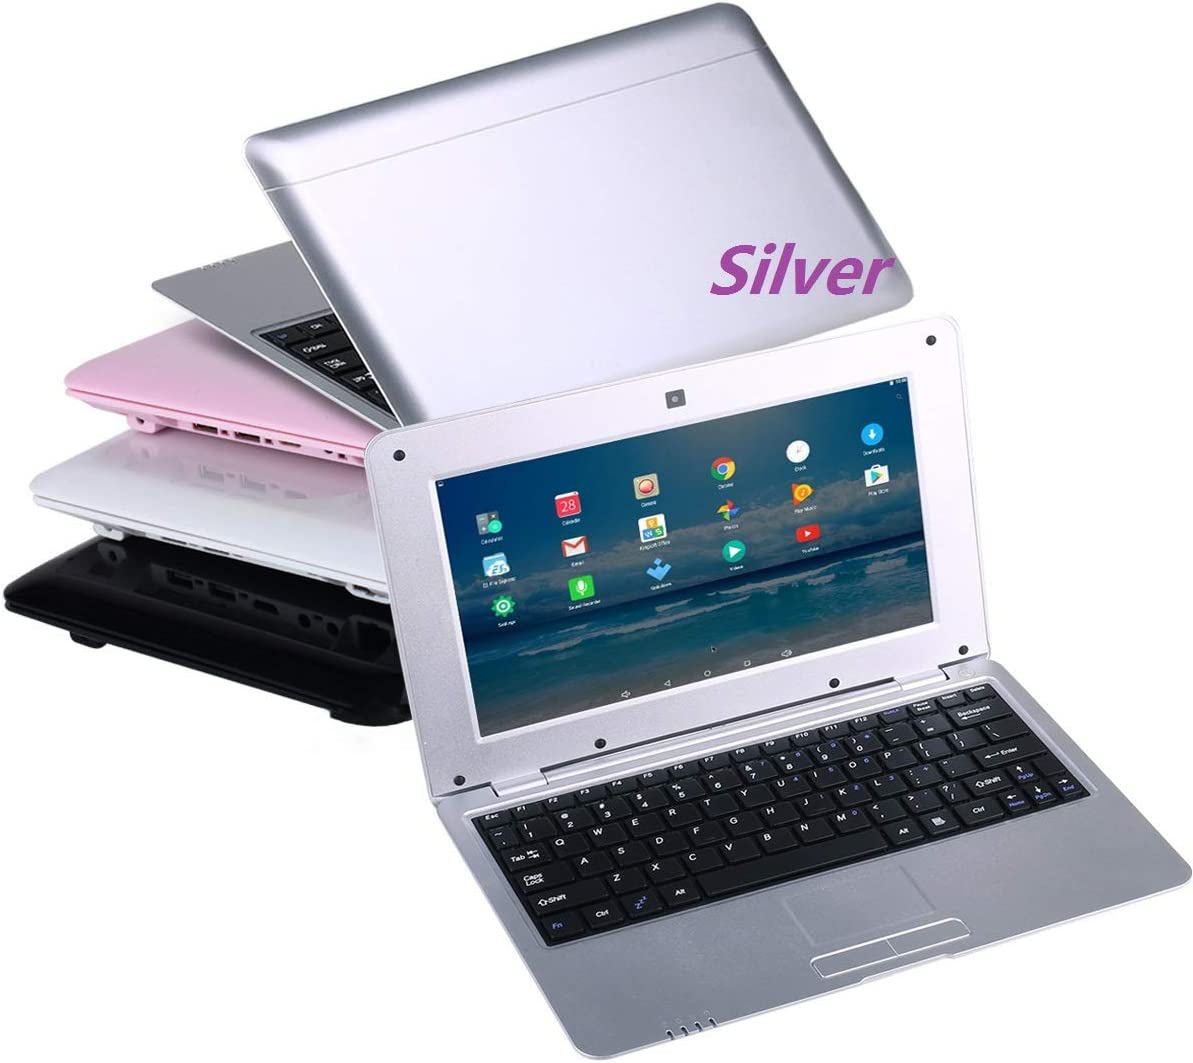 Goldengulf 10.1 Inch Quad Core 8GB Computer Laptop PC Android 6.0 Mini Netbook Slim and Lightweight Notebook WiFi Webcam Netflix YouTube Google Player Flash (Silver)